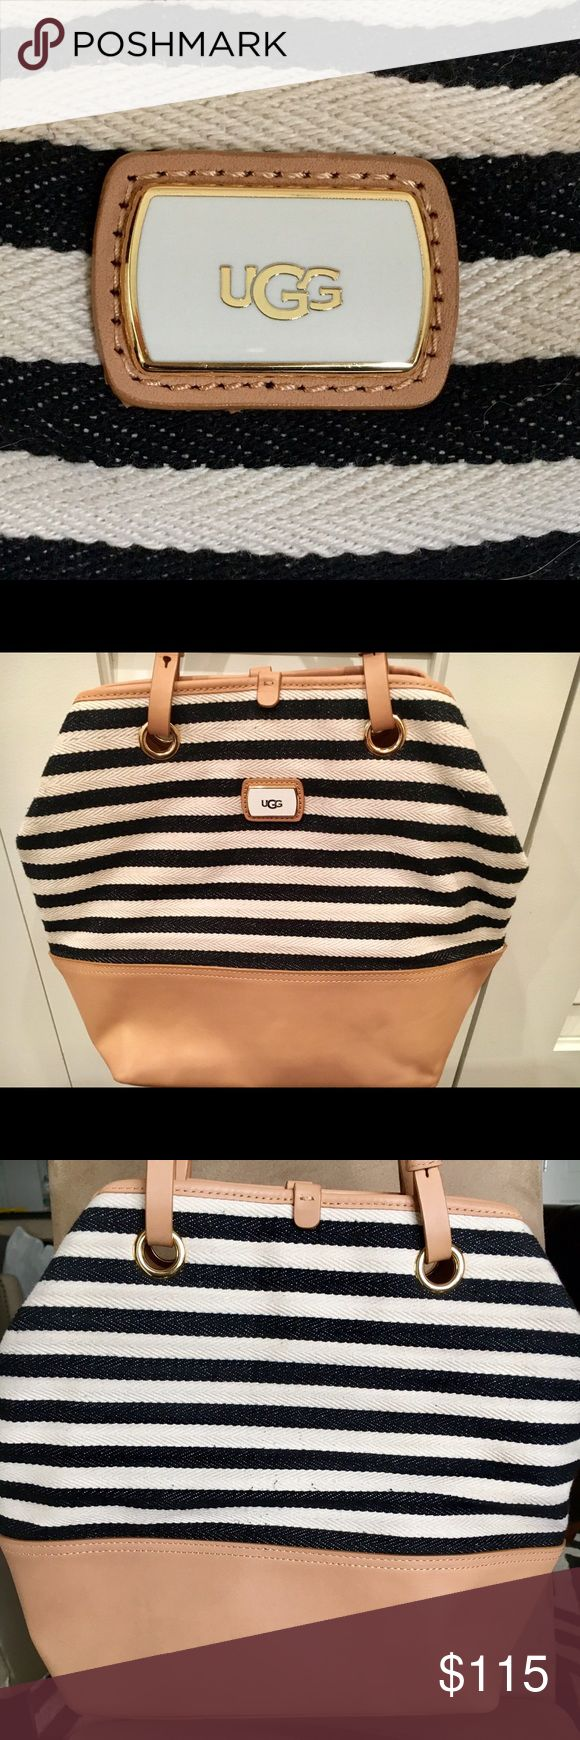 Ugg Nautical Bag Cutest bag! Tote with adjustable leather strap for shoulder; 3 interior pockets-1 with zipper; magnetic closure, leather on bottom. Great for spring/summer! Barely used, great condition. Original owner purchased directly through Ugg retail store. Priced to sell! UGG Bags Shoulder Bags